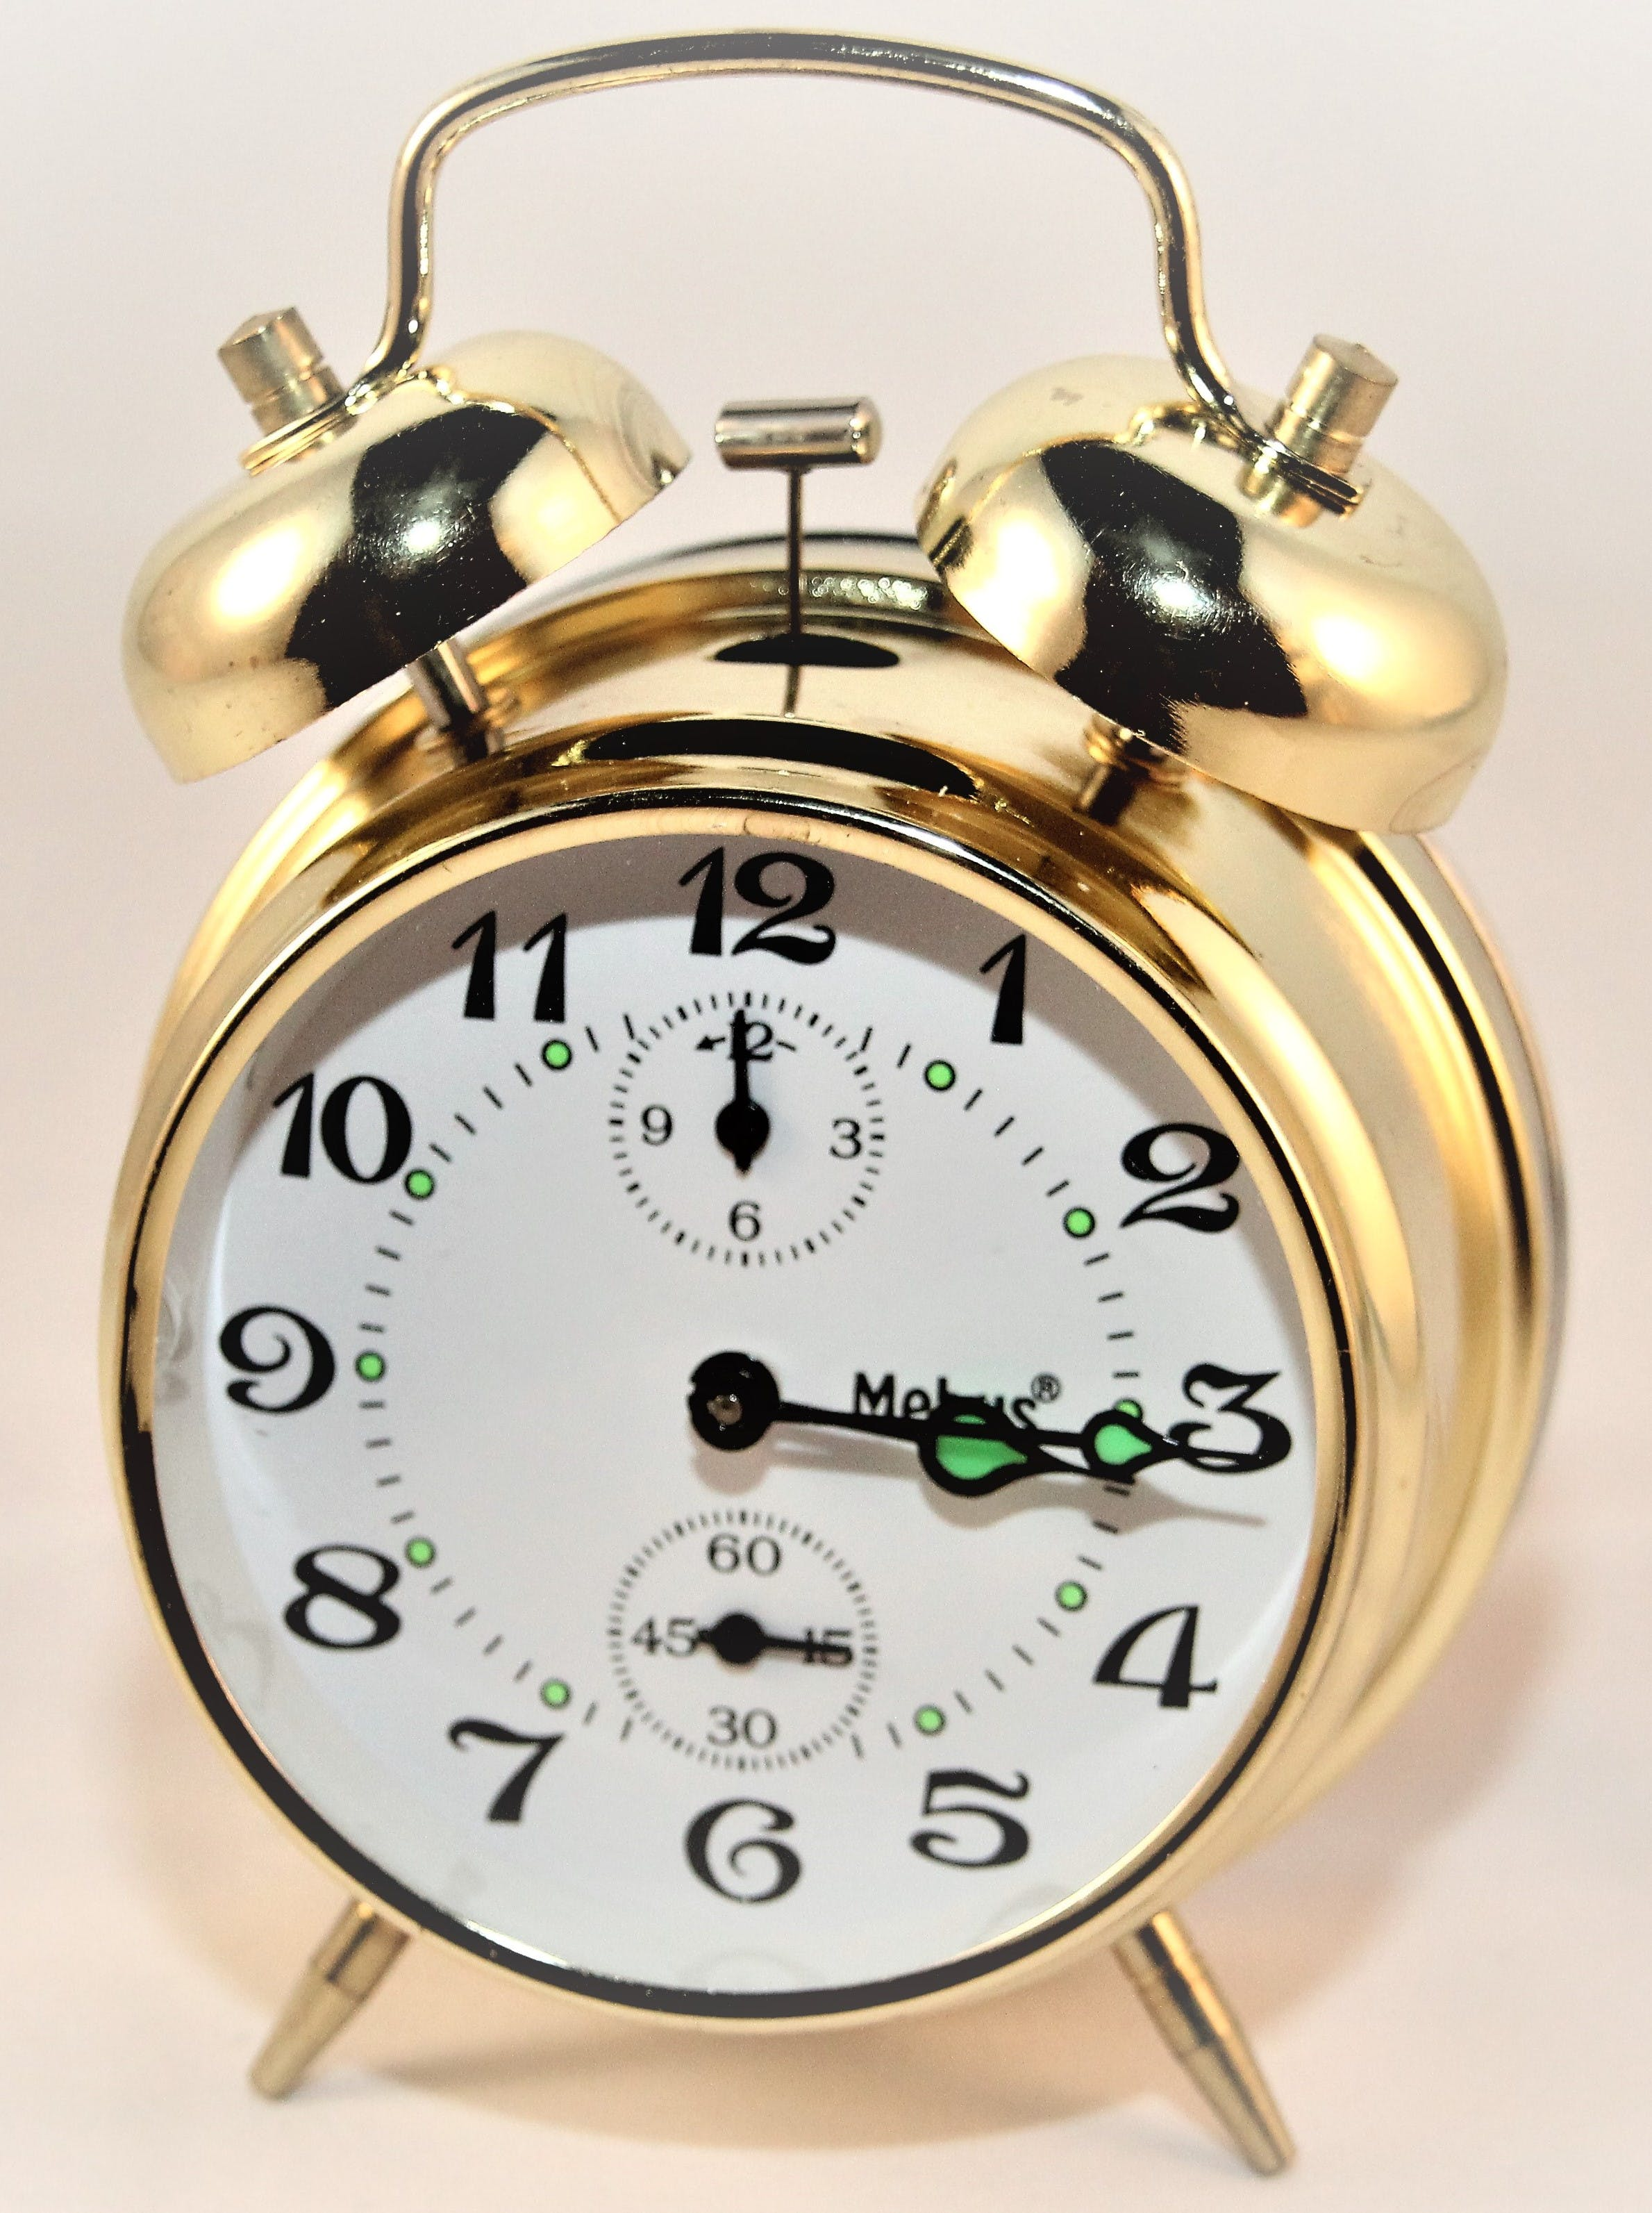 Brass-colored Alarm Clock at 3:15